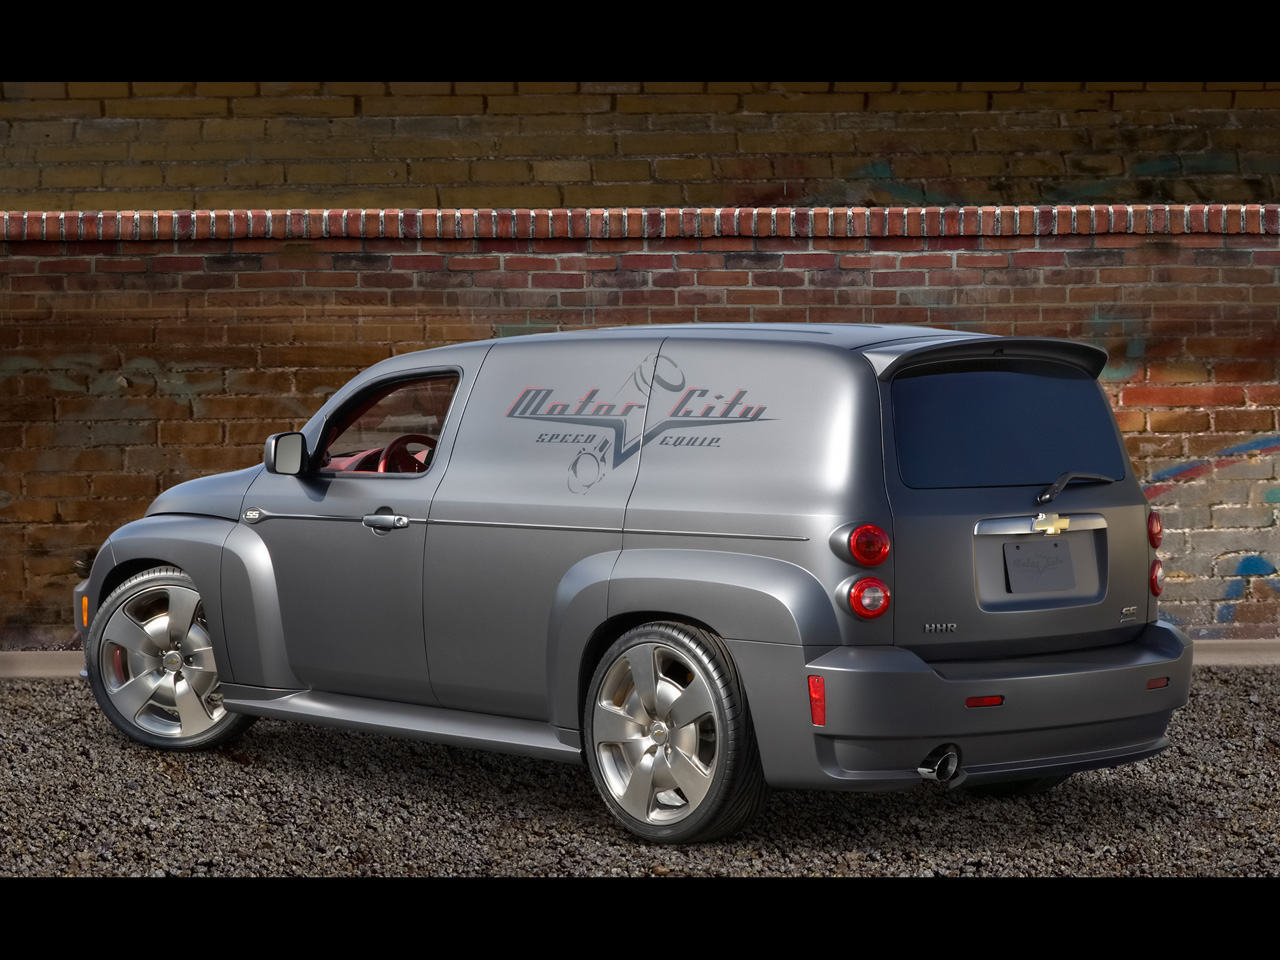 All Chevy 2007 Chevrolet Hhr Reviews Information And Photos Zombiedrive